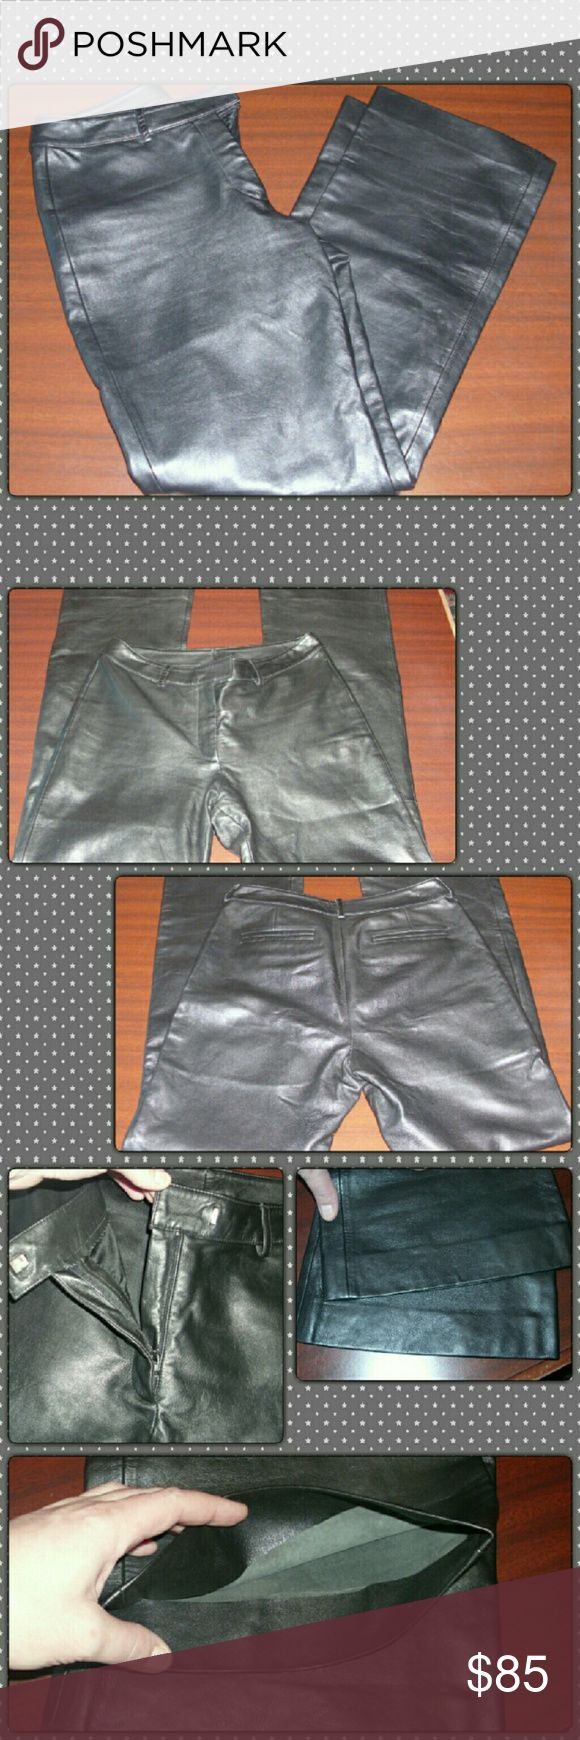 """🎉🎉ALL PRELOVED BOGO 50% OFF!!🎉🎉 Super soft 100% leather pants. Only imperfection is a slight discoloration of metal hook closure as pictured but does not affect the hook what so ever. Leather is in excellent condition. Only have worn once. They are a size 8. Waist is 30""""  Inseam is 29"""" they have a 10"""" rise. Super comfortable!! Feel free to ask any questions or request additional pictures! VS2 Pants"""